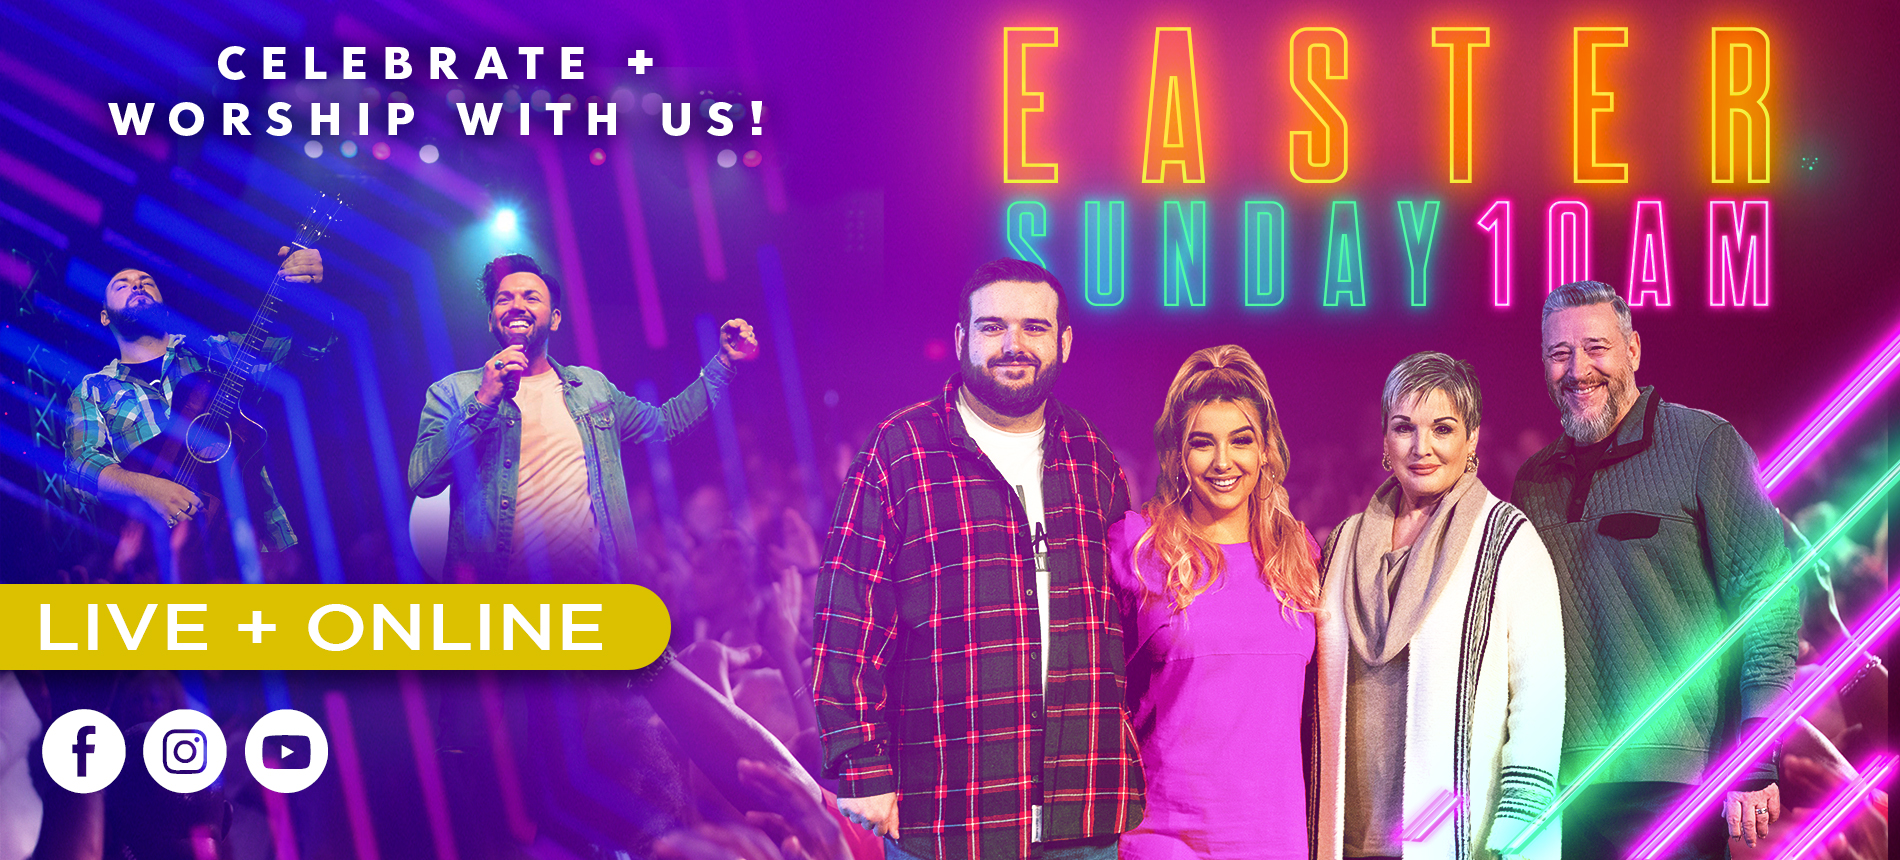 Celebrate + Worship with Us! Easter Sunday 10 Am Live